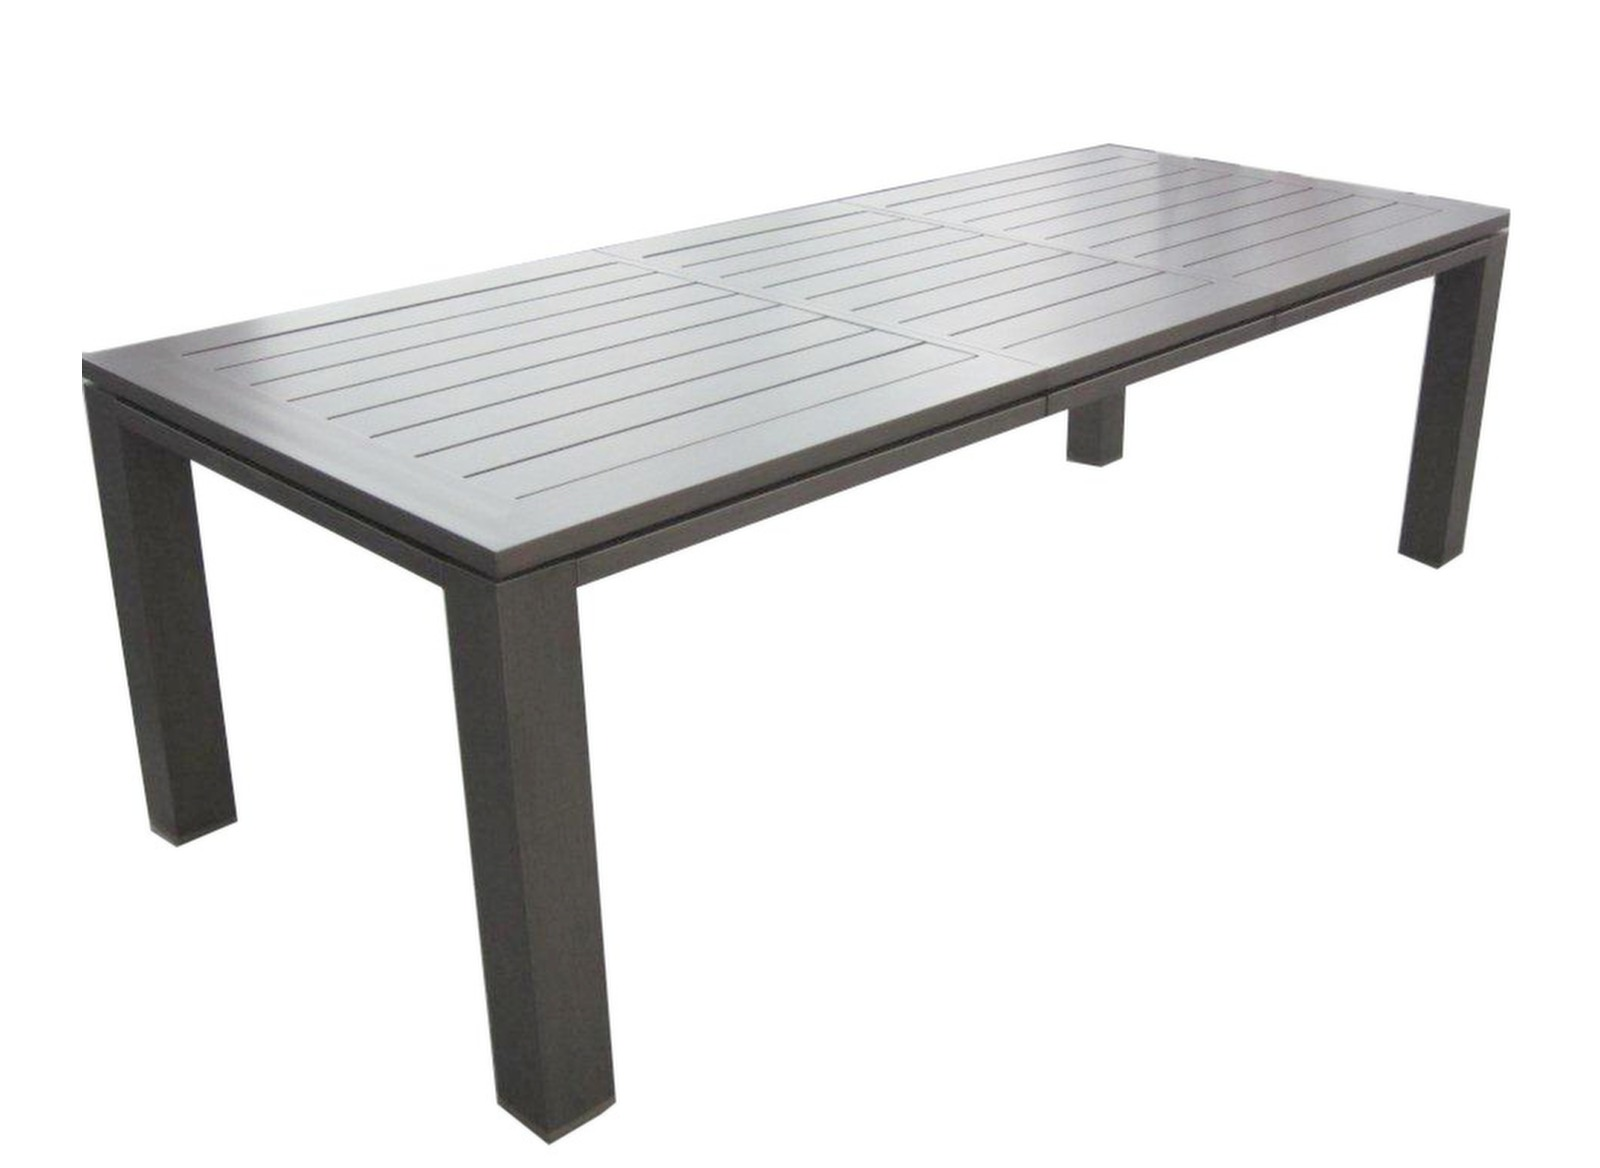 Table de jardin aluminium 180 240cm latino oc o proloisirs - Table de jardin en alu ...